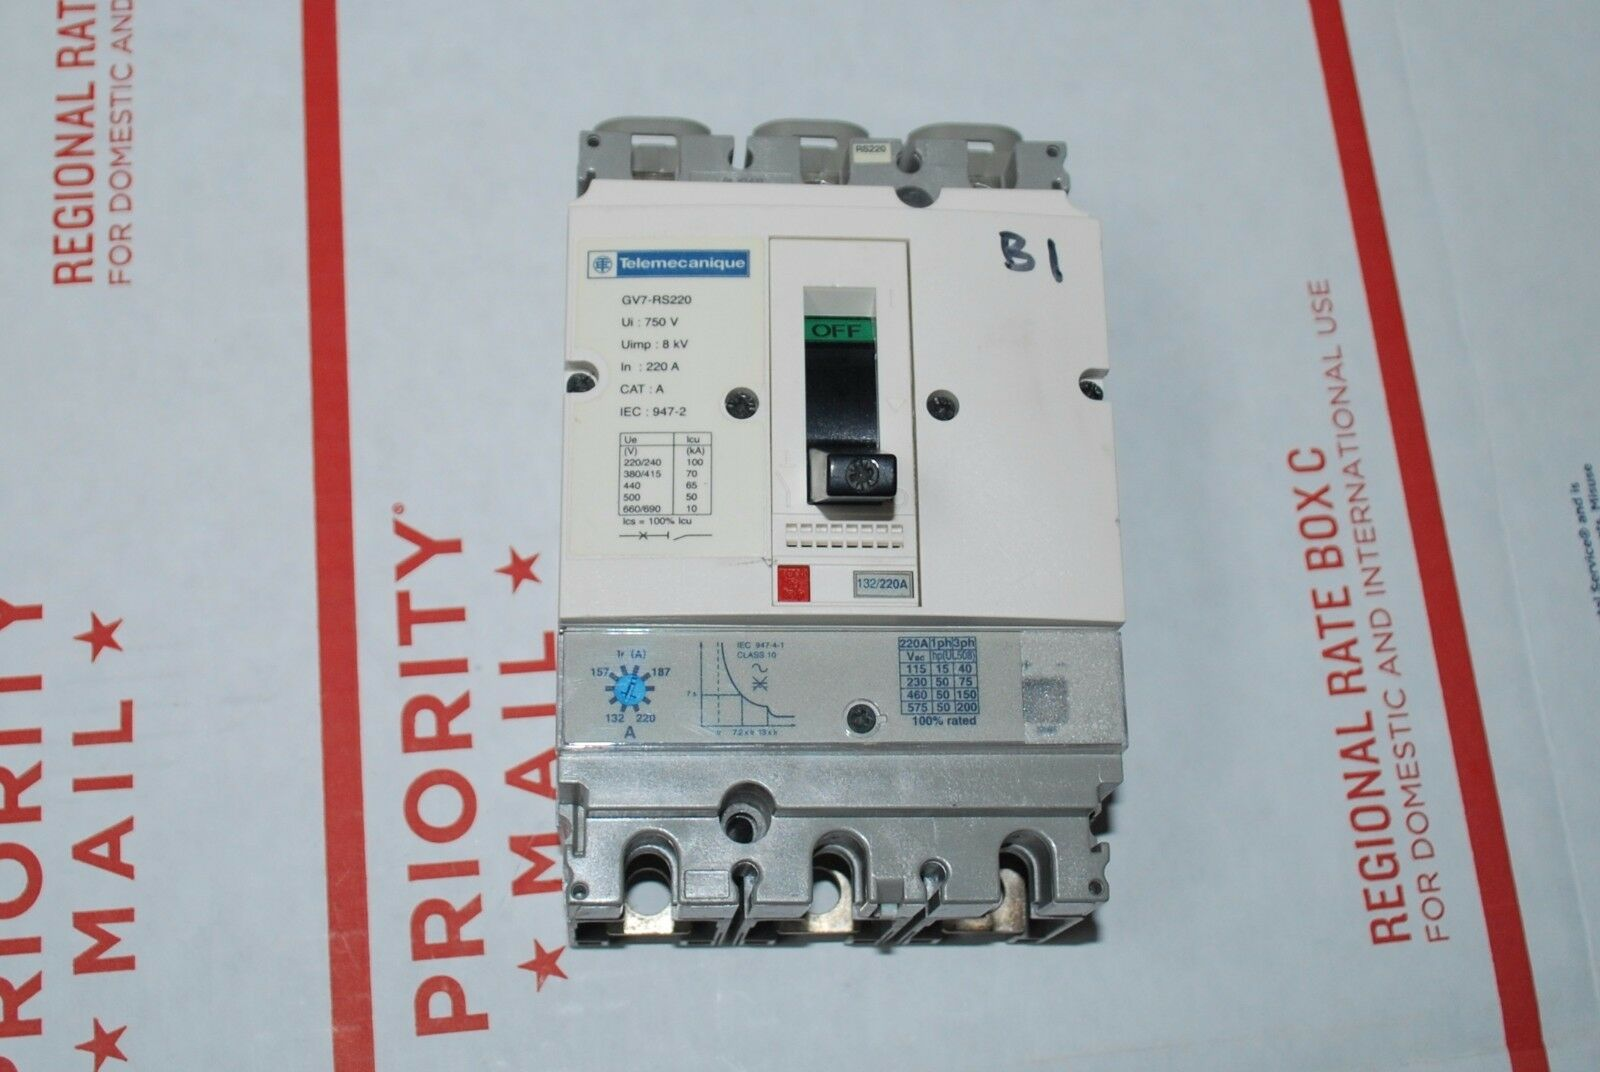 Upc 785901504832 Schneider Electric Gv7rs220 Motor Starter Manual 240 3 Phase Contactor Wiring Product Image For Gv7 Rs220 220 Amp Pole Circuit Breaker